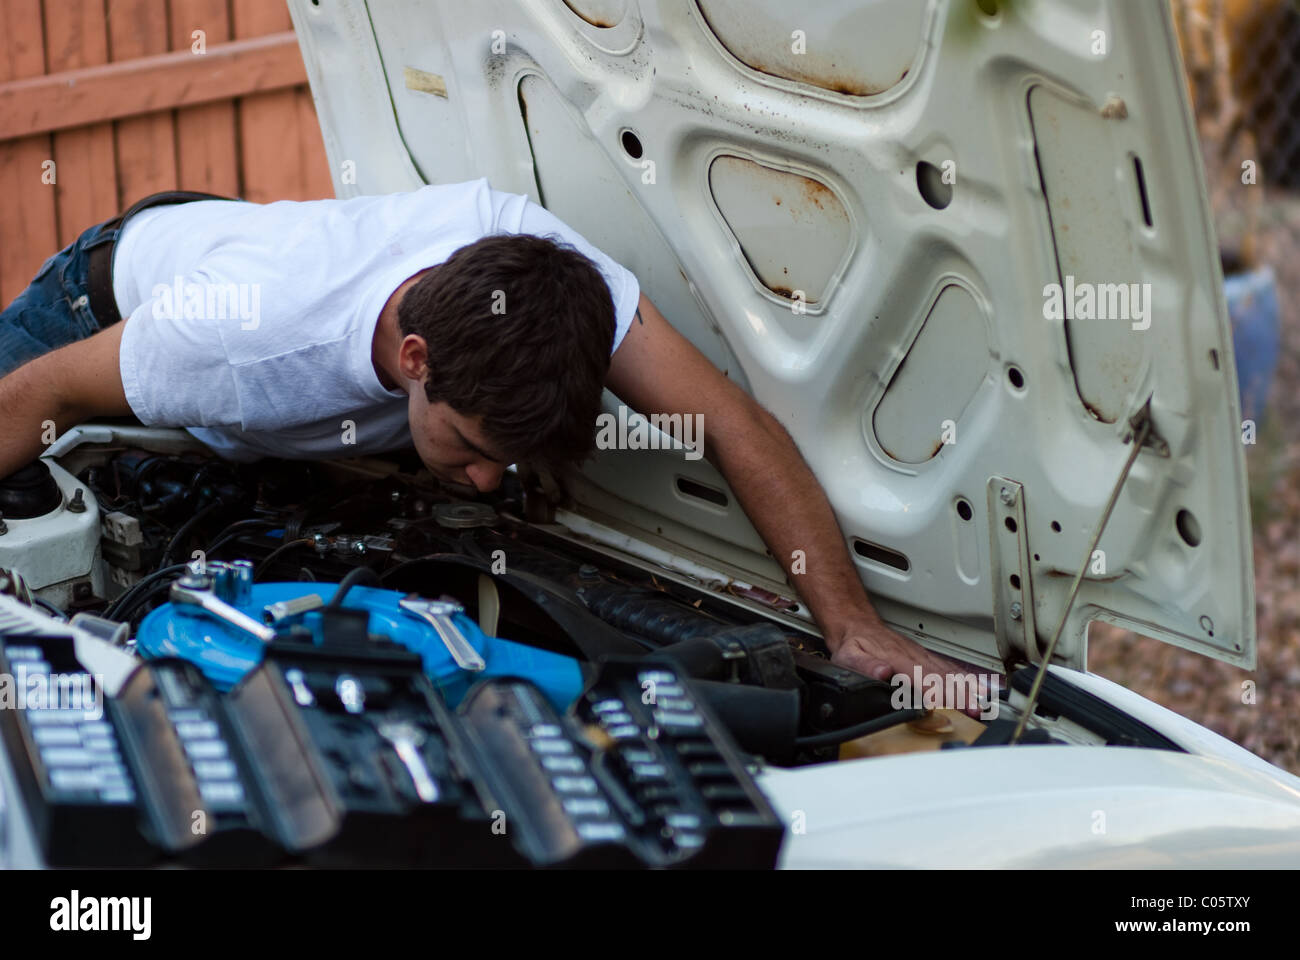 Man working on car in yard. Do it yourself mechanic performing auto repair. Examining engine compartment for signs - Stock Image